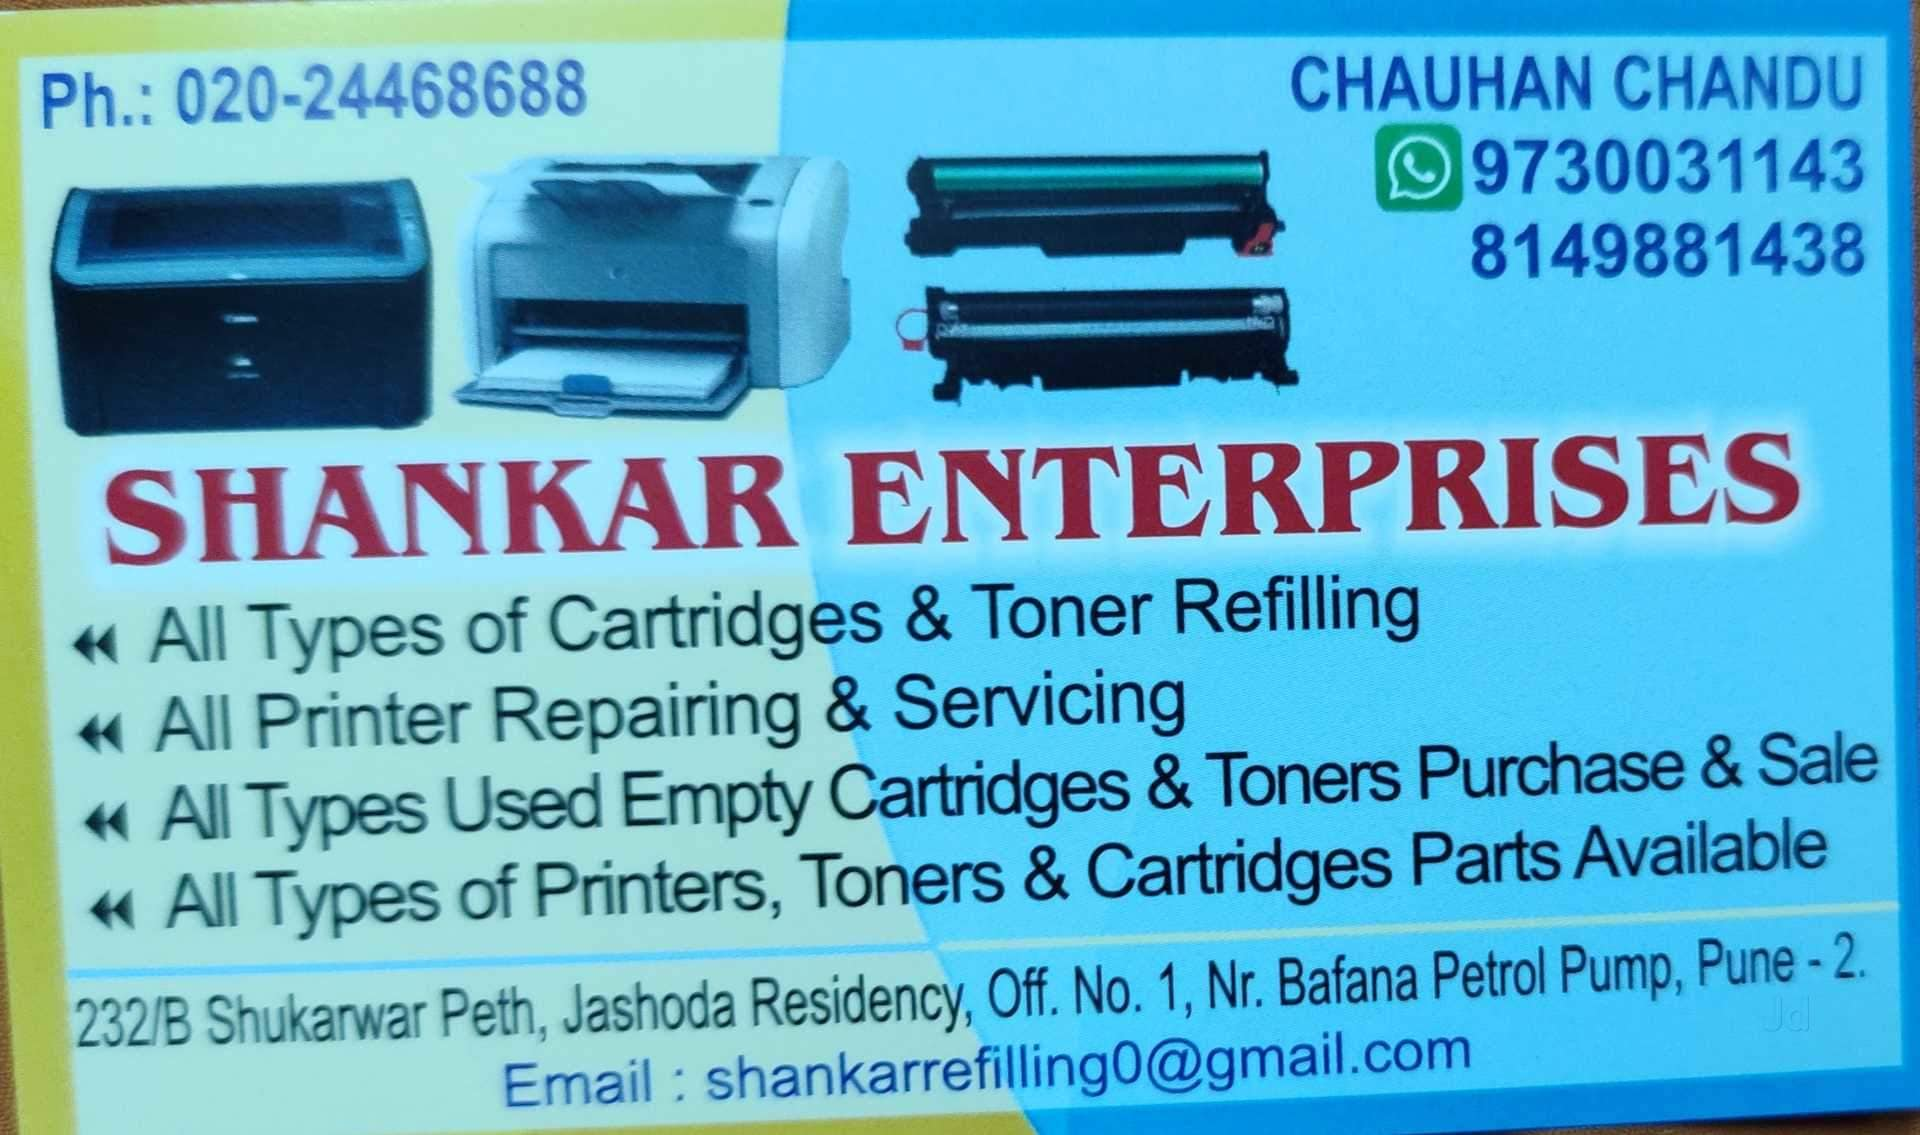 Top 50 Brother Computer Printer Repair & Services in Pune - Best